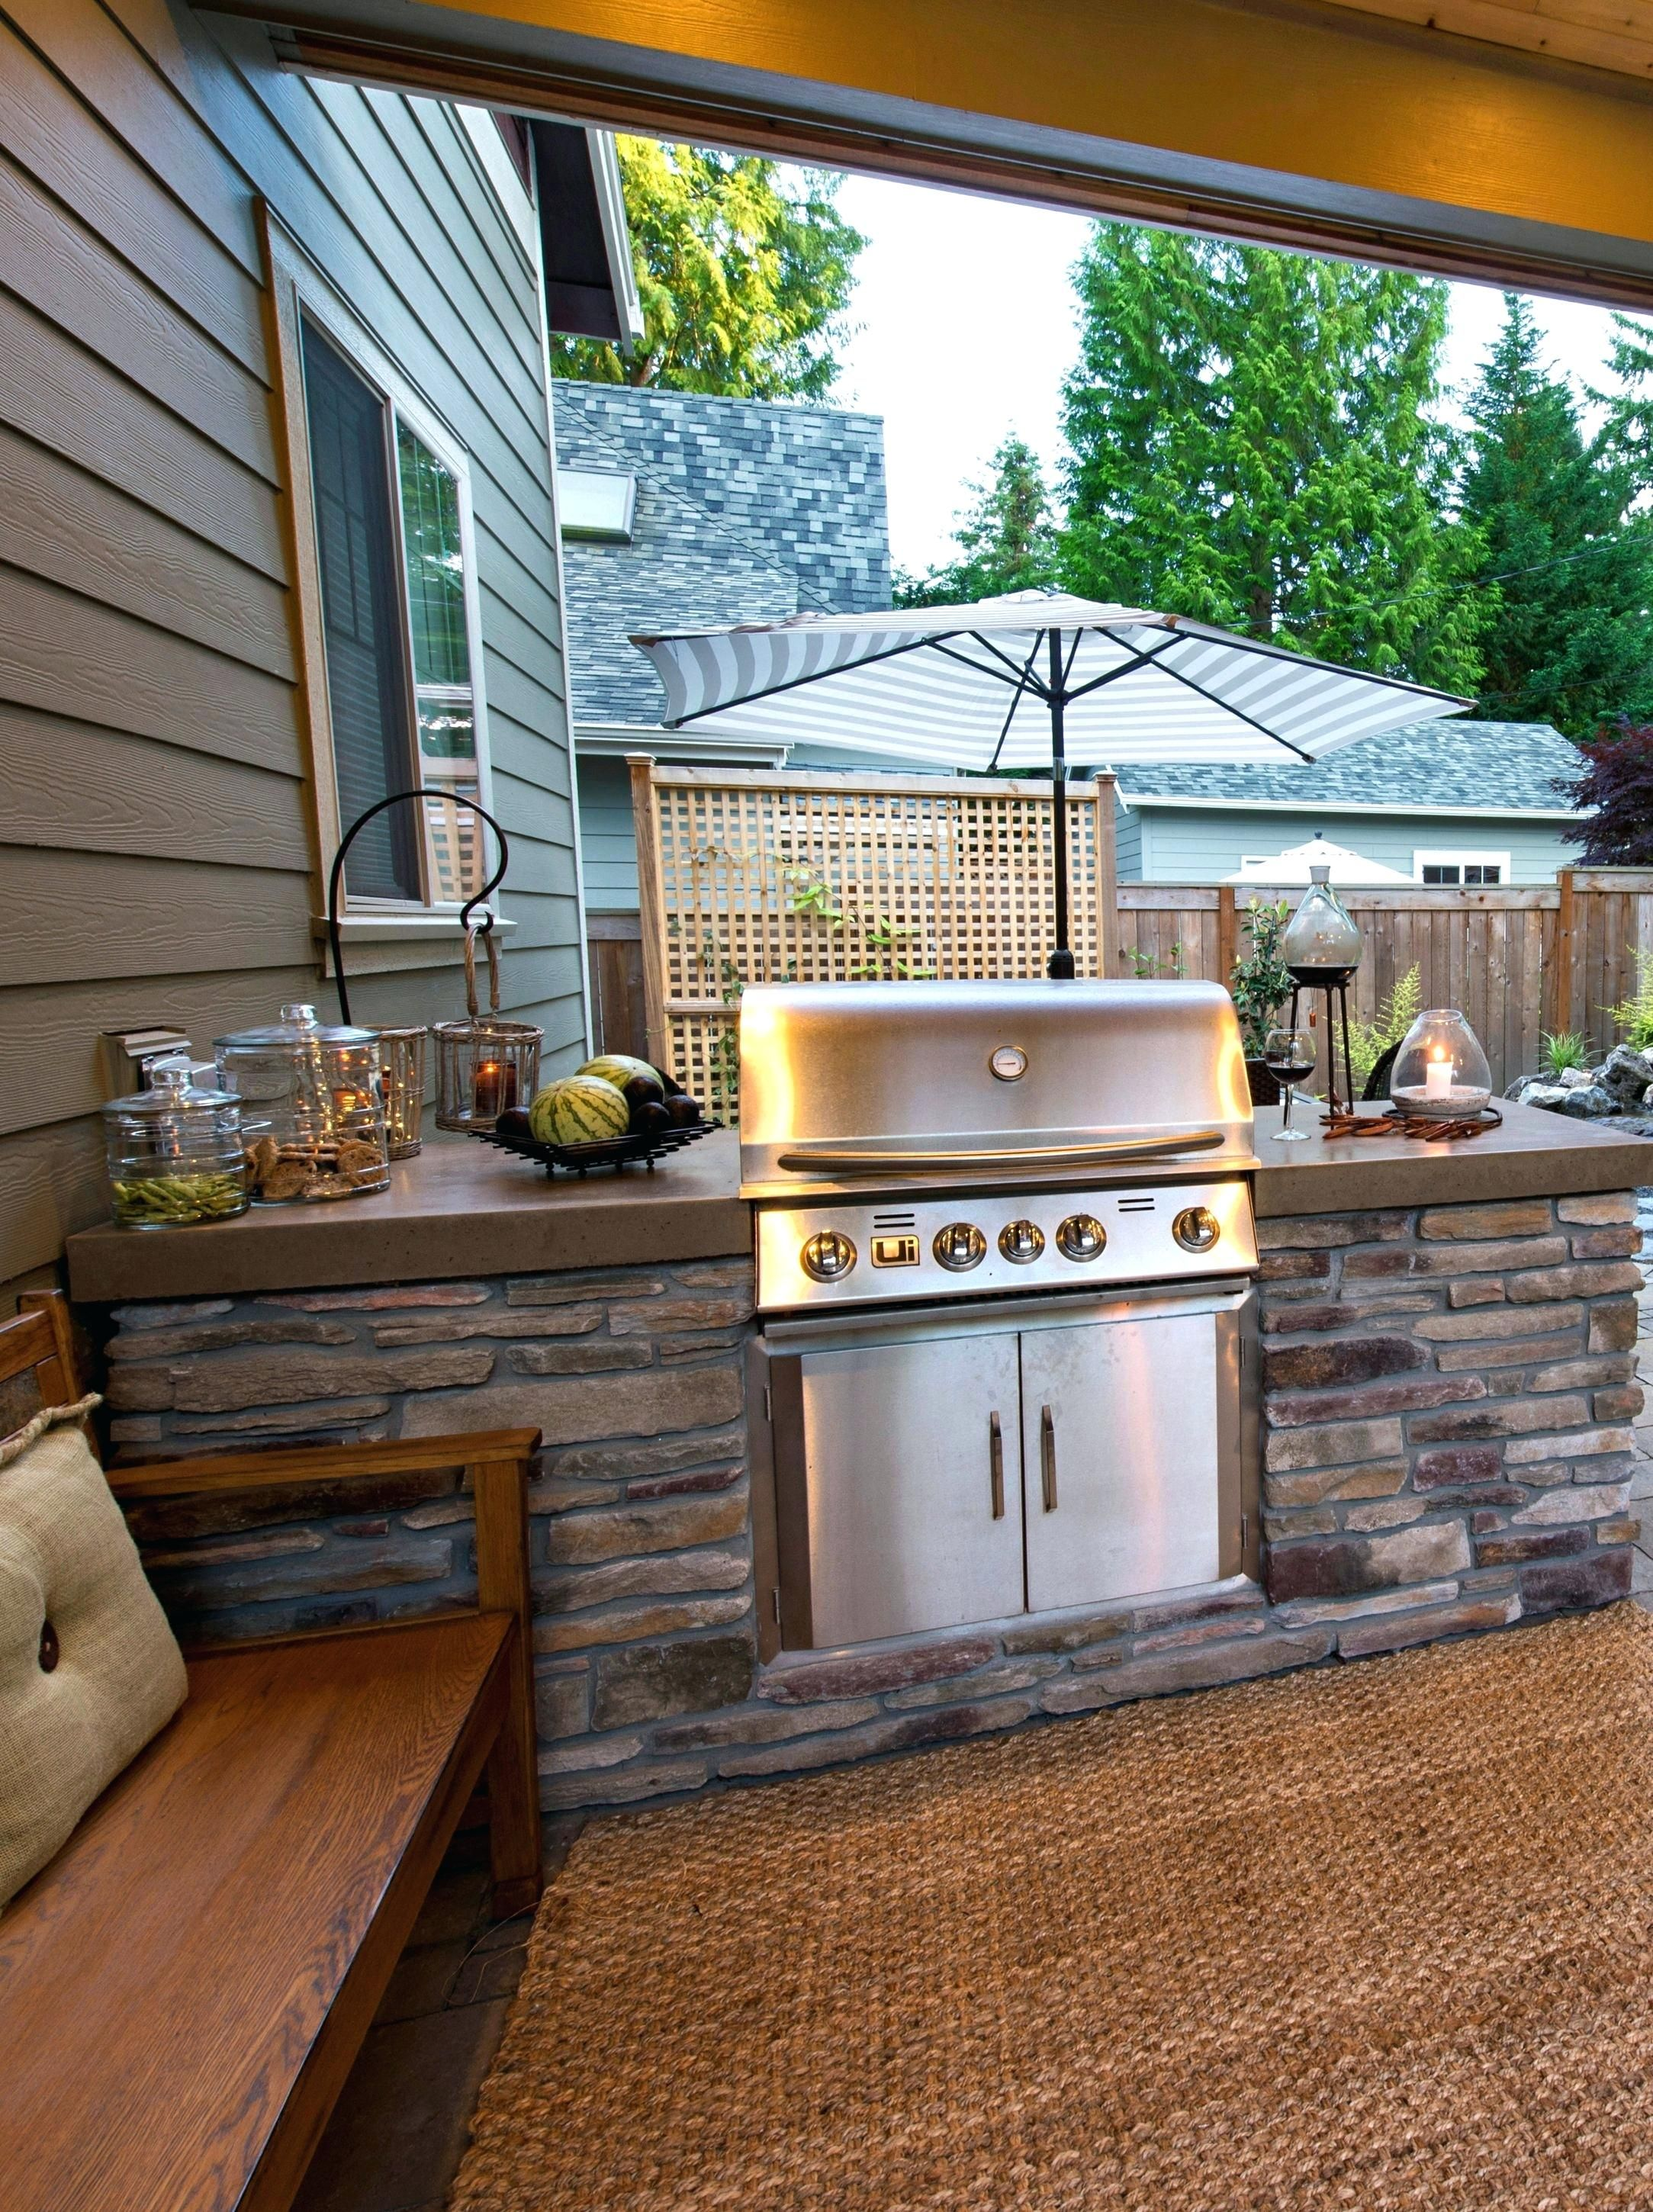 Outdoor Kitchen Ideas on a Budget (Affordable, Small, and